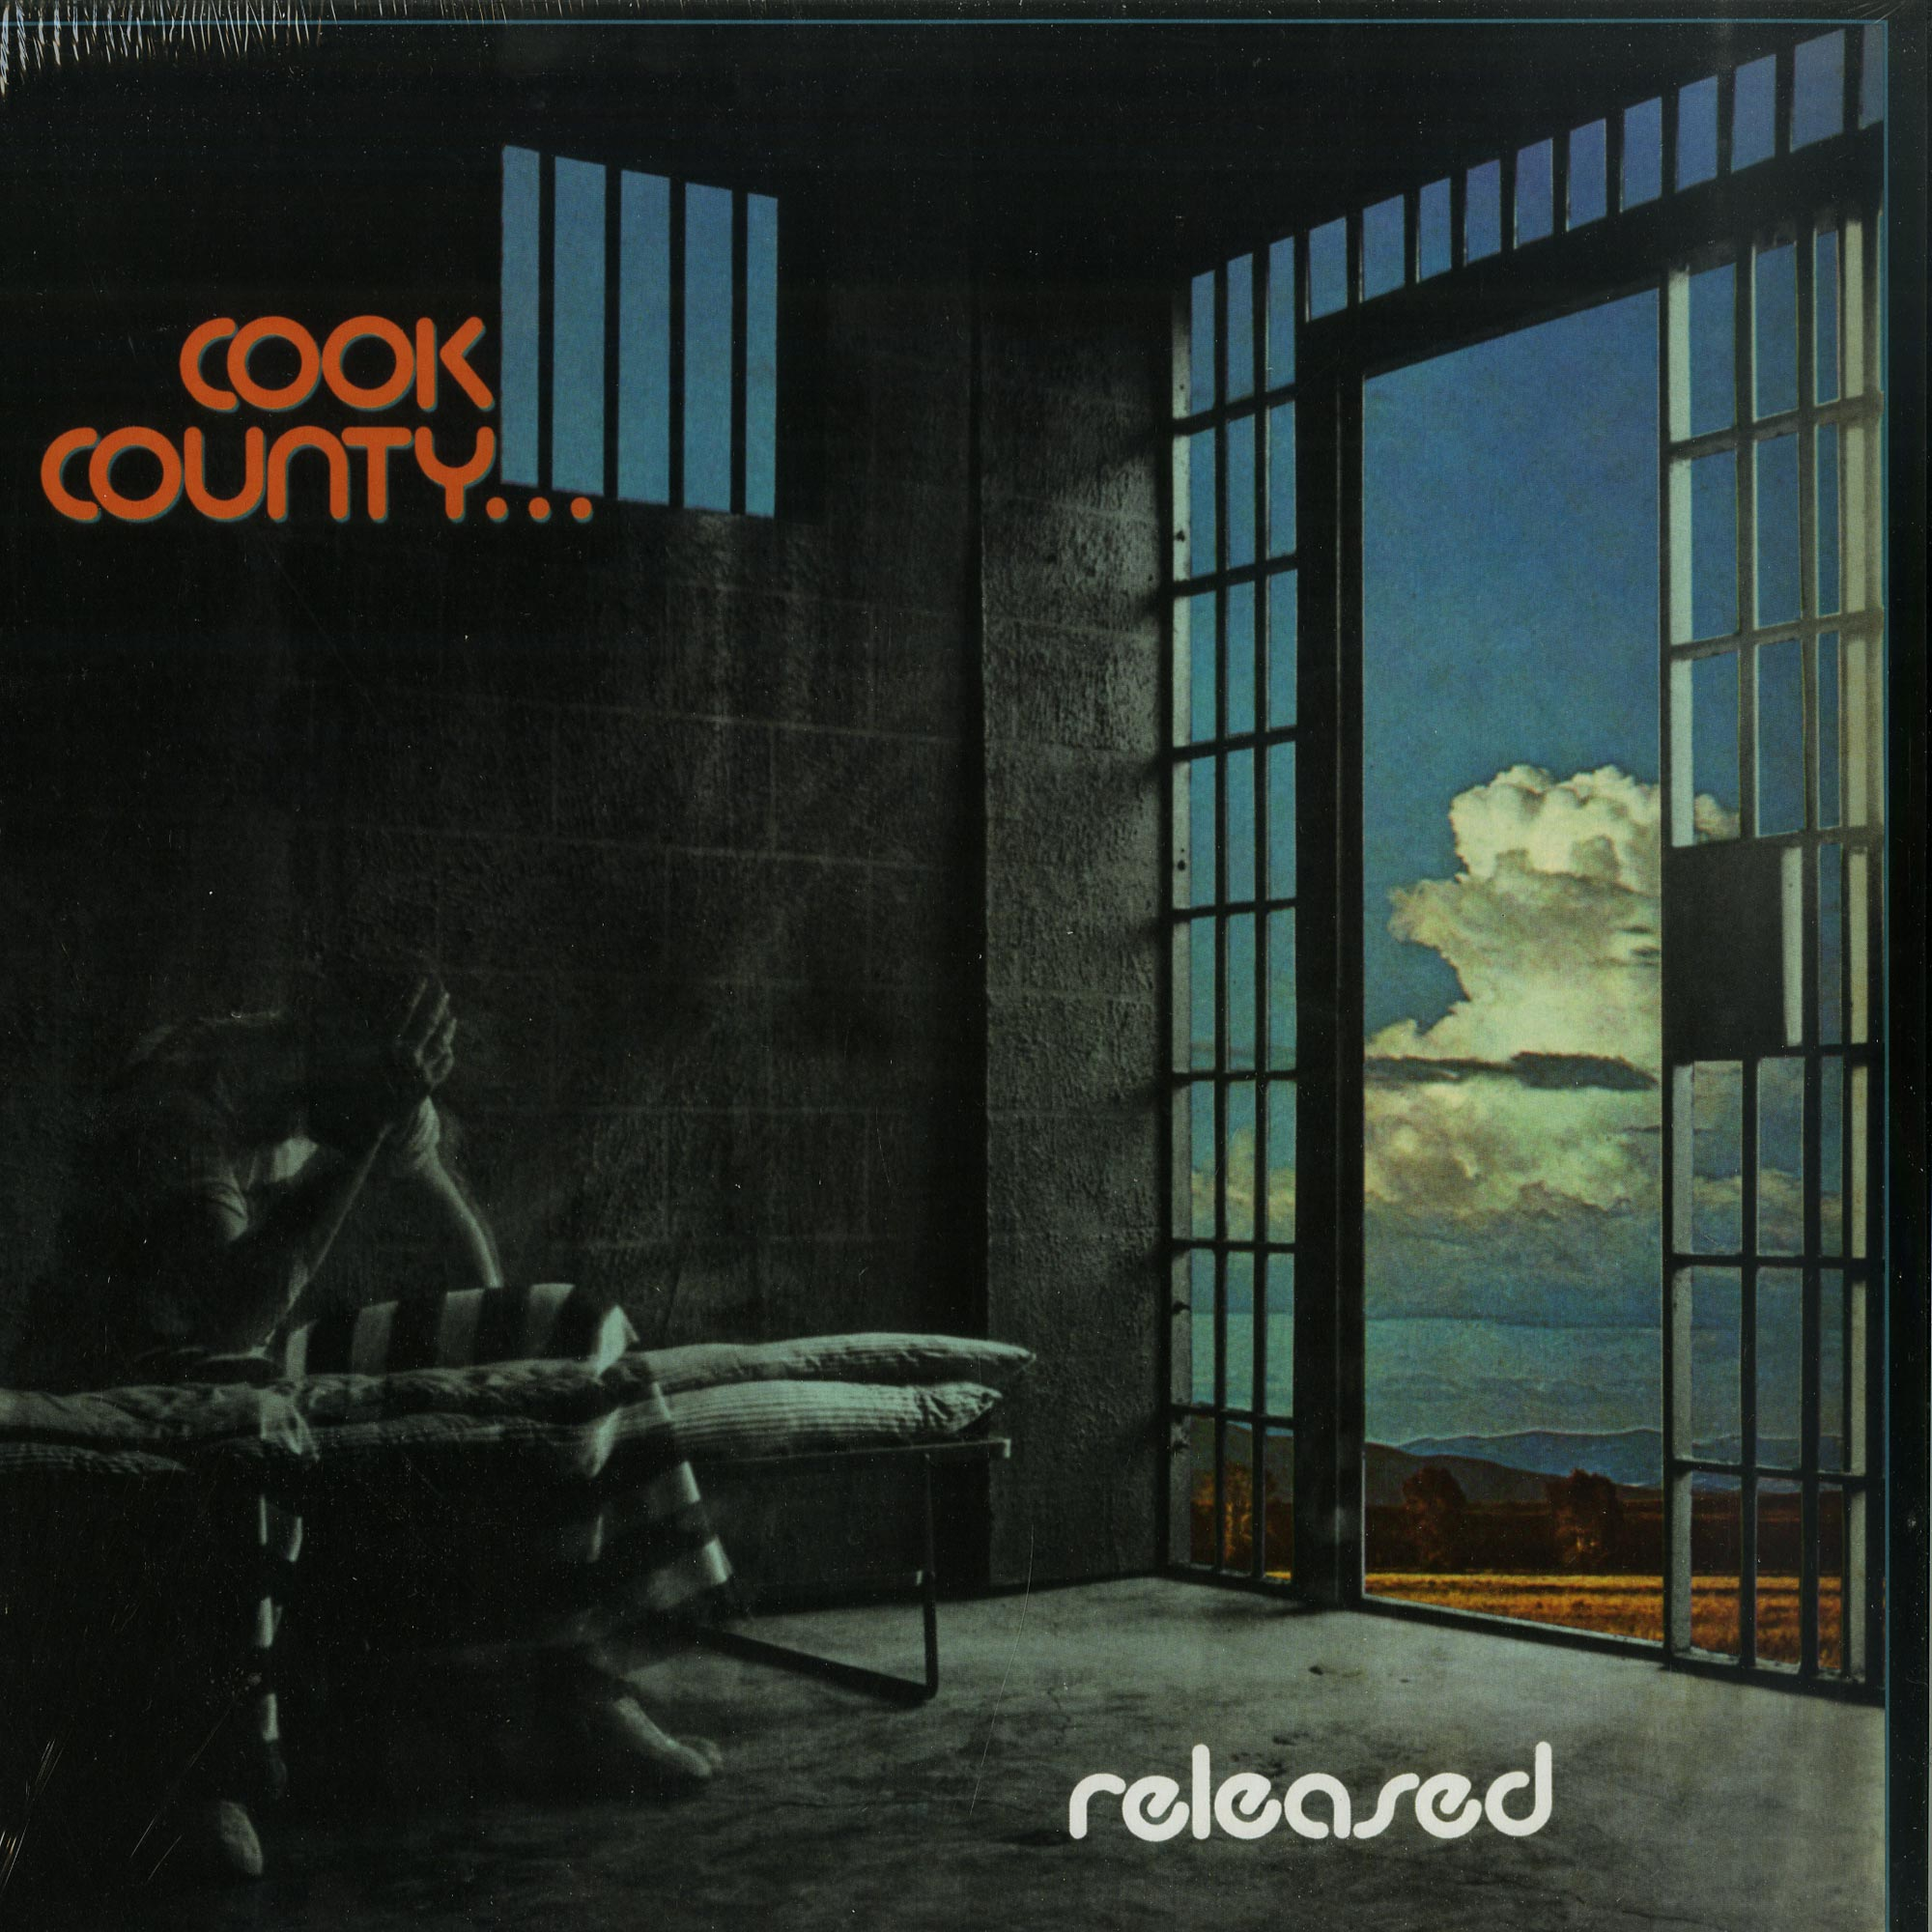 Cook County - RELEASED